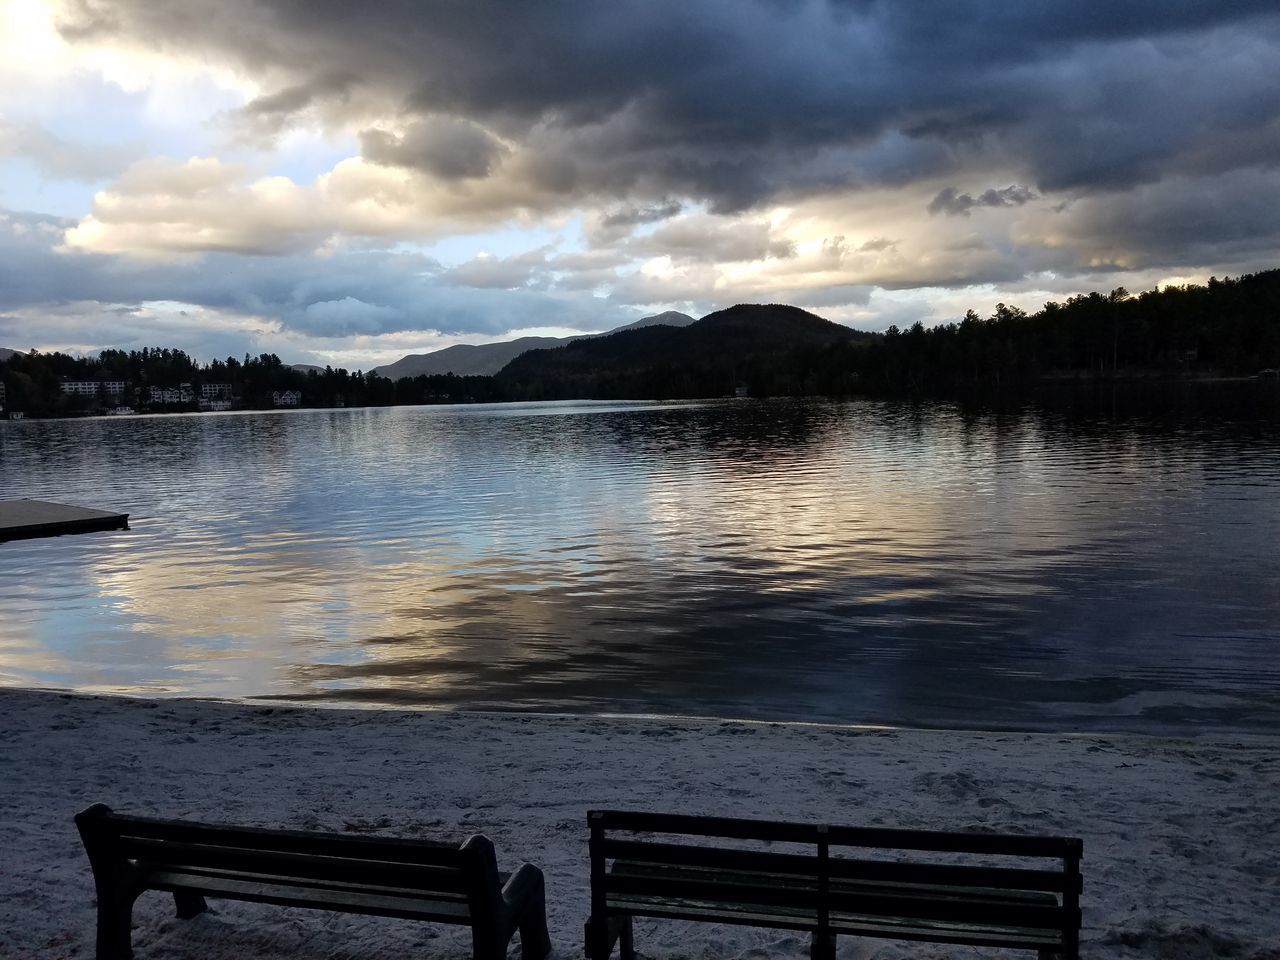 Water Cloud - Sky Lake Nature Outdoors No People Scenics Beauty In Nature Sky Mountain Landscape Day Tree Remote Tranquil Scene Peace And Quiet Cloudy Skies Lake View Trees Lake Placid, NY Mirror Lake Sunset Tranquility Beauty In Nature Park Benches